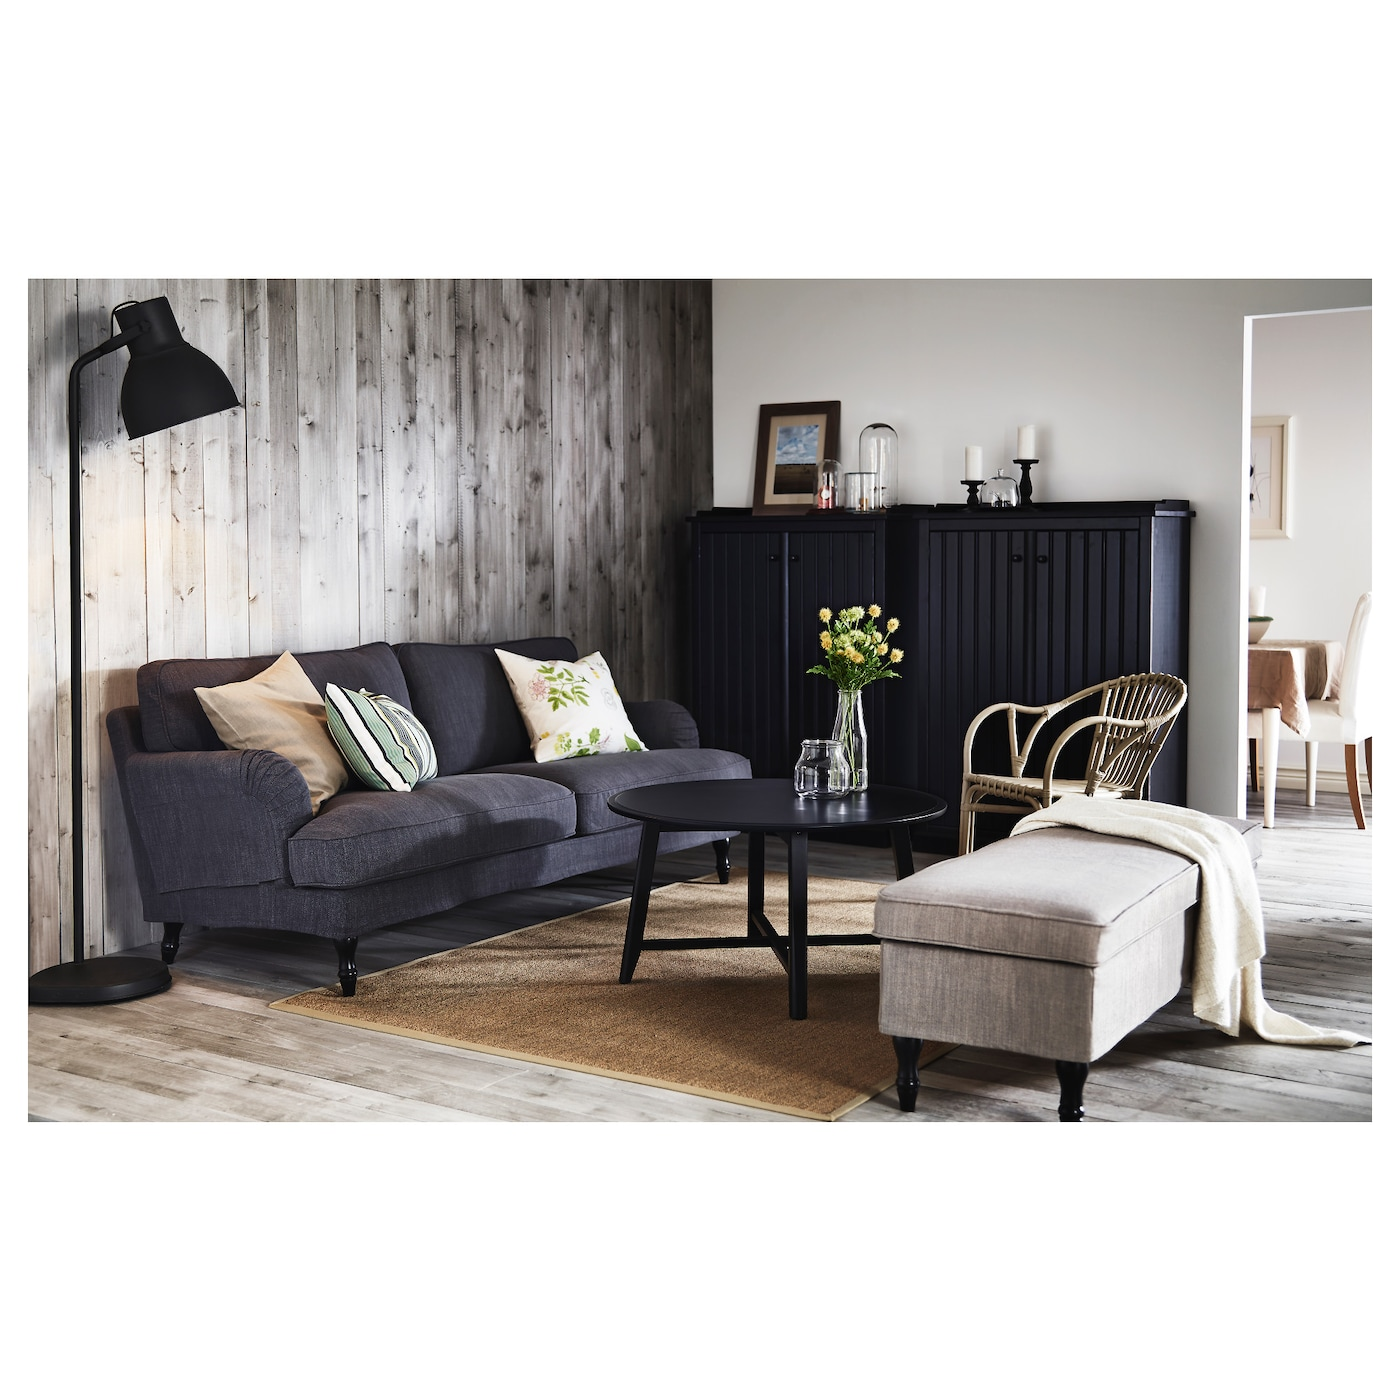 STOCKSUND Three seat Sofa Nolhaga Dark Greyblackwood IKEA